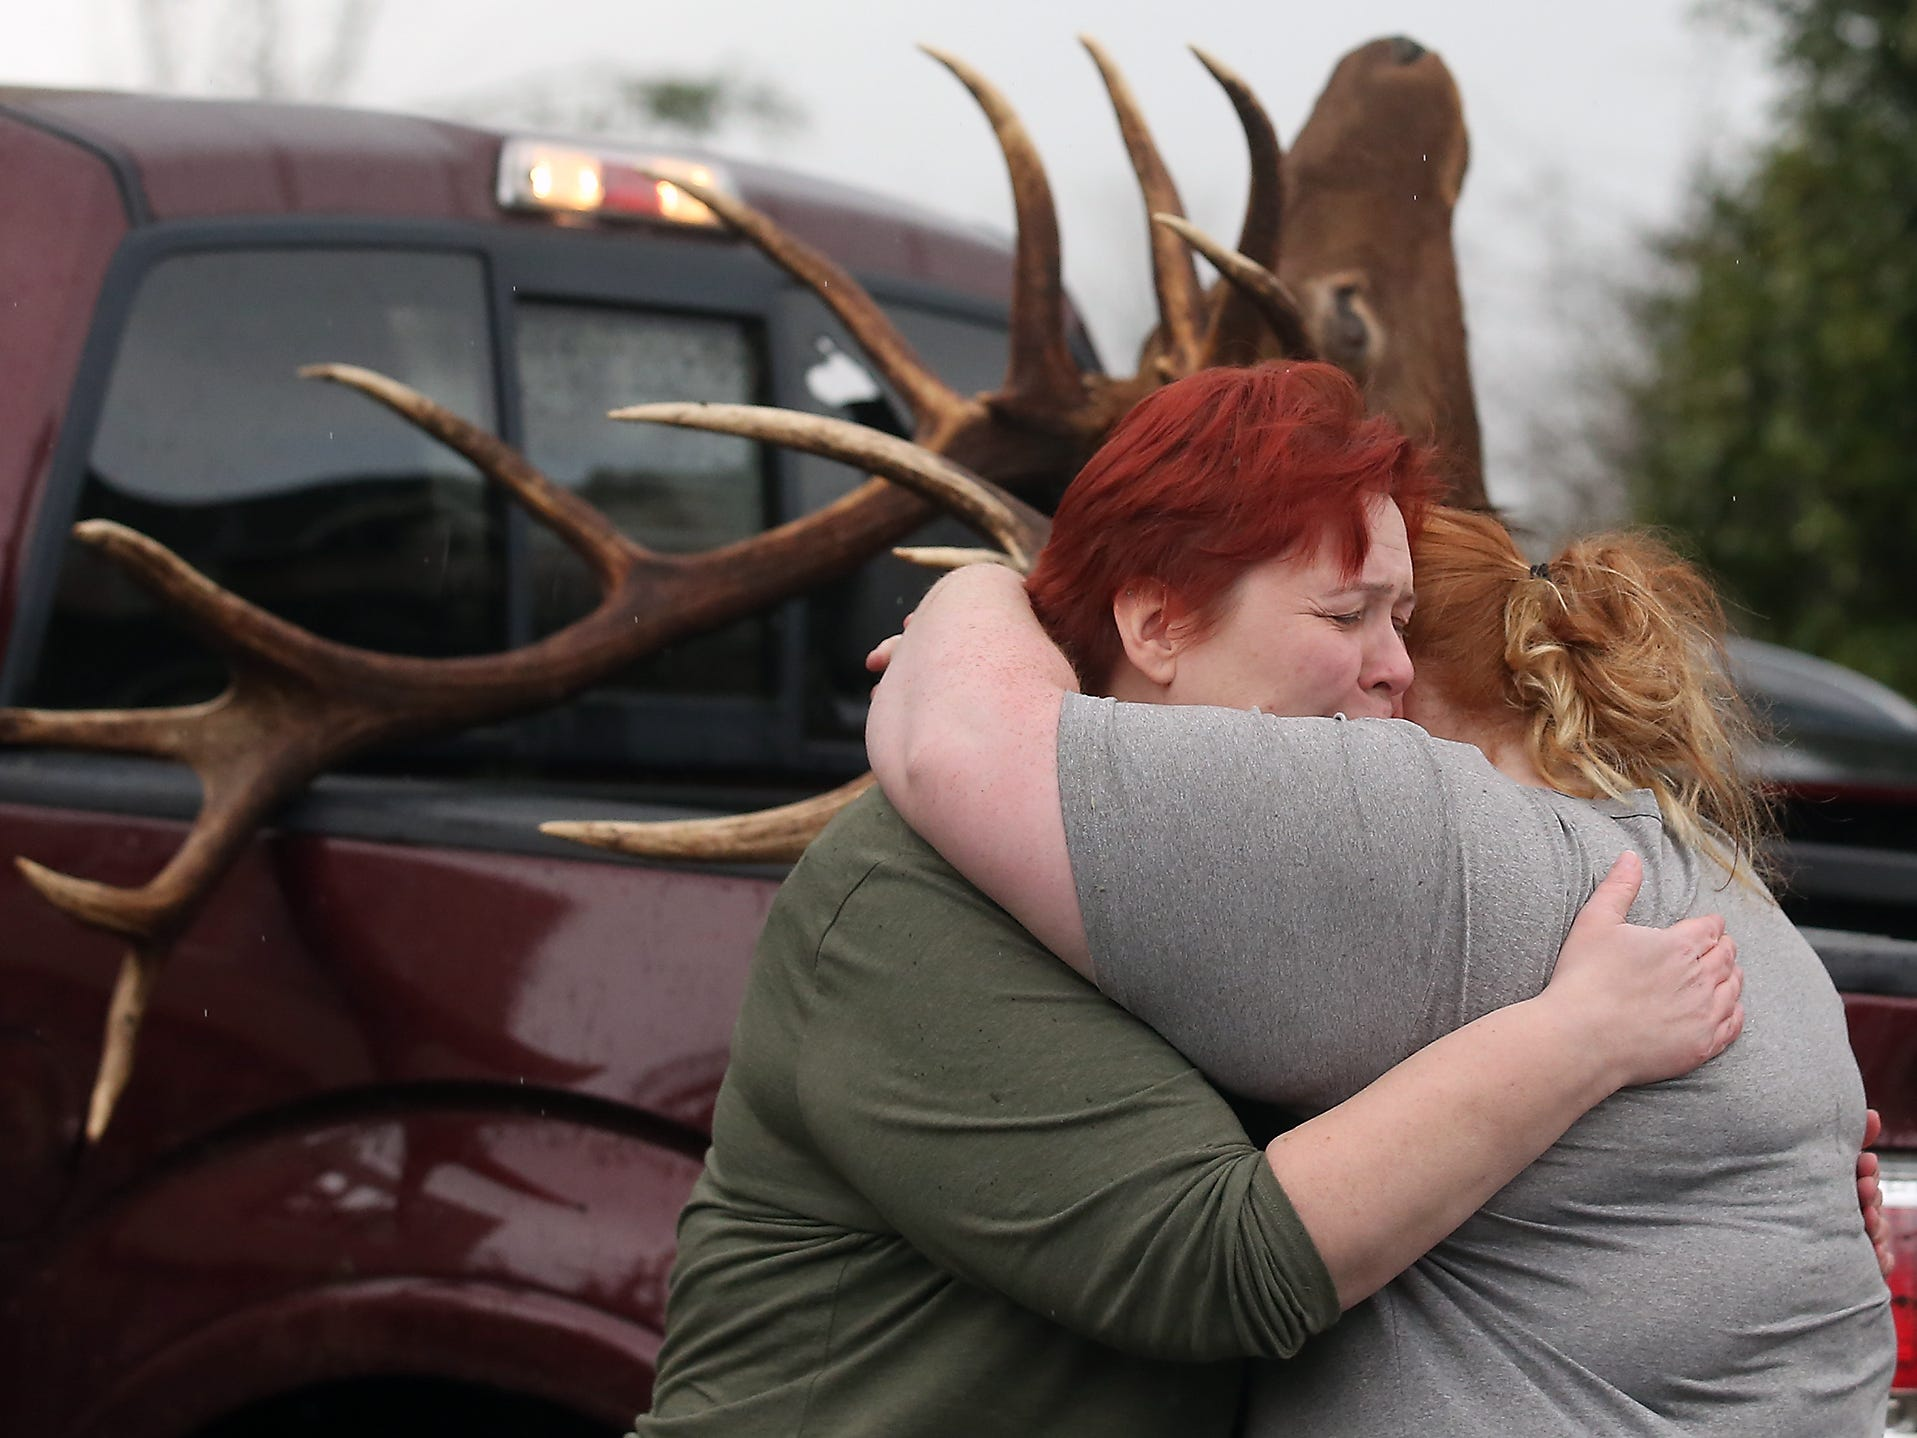 Tawnia Cope-Crain (left) embraces daughter Tamlyn in the driveway of their heavily damages home on Tiburon Court in Port Orchard on Wednesday, December 19, 2018. The taxidermy elk head in the back of the truck behind them was from a wall in their home and was found in the neighbors yard.